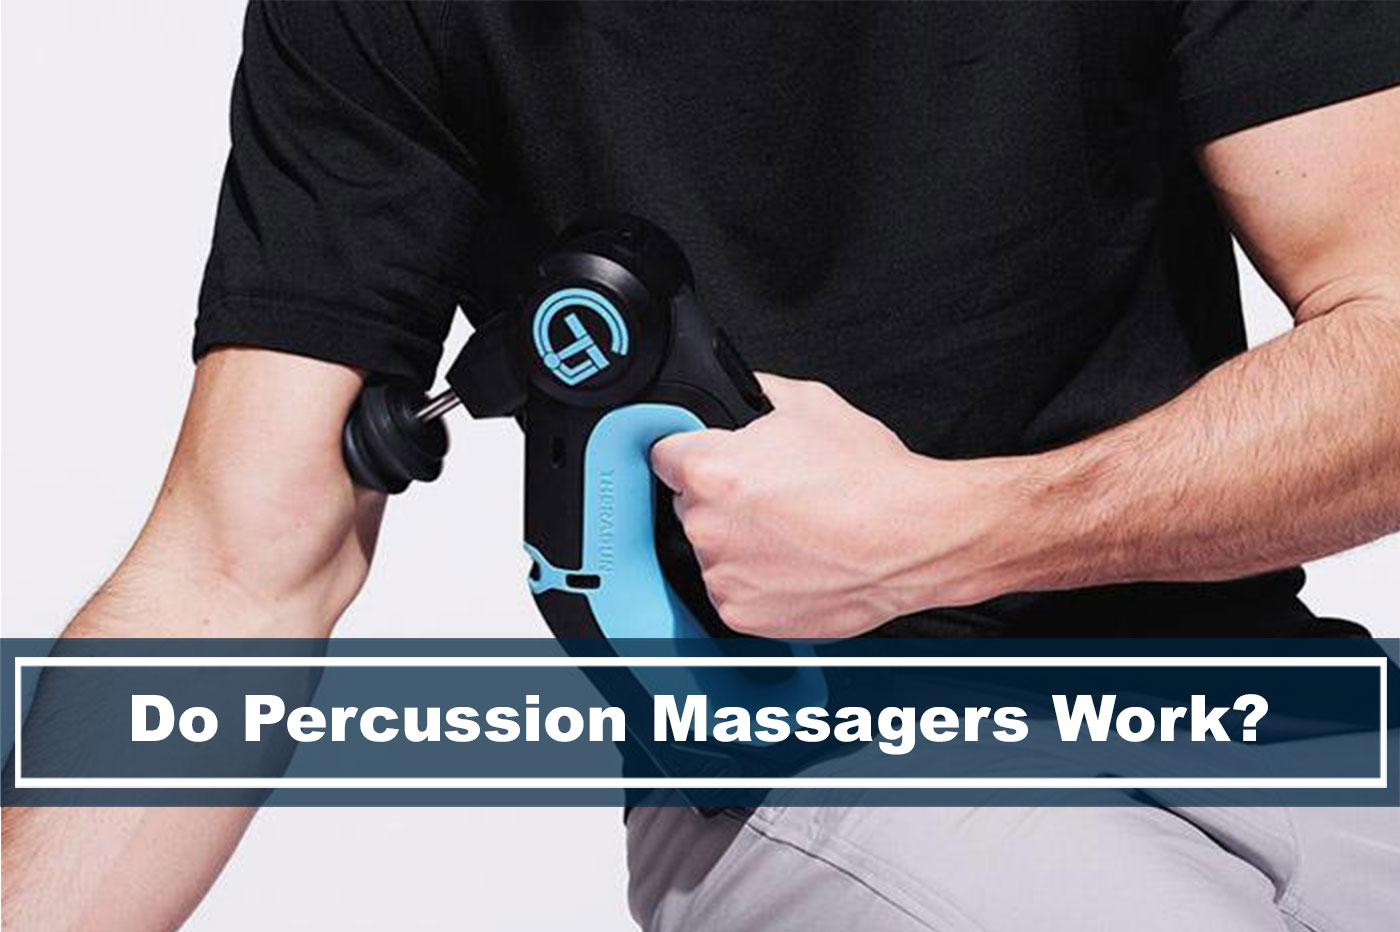 do percussion massager work?